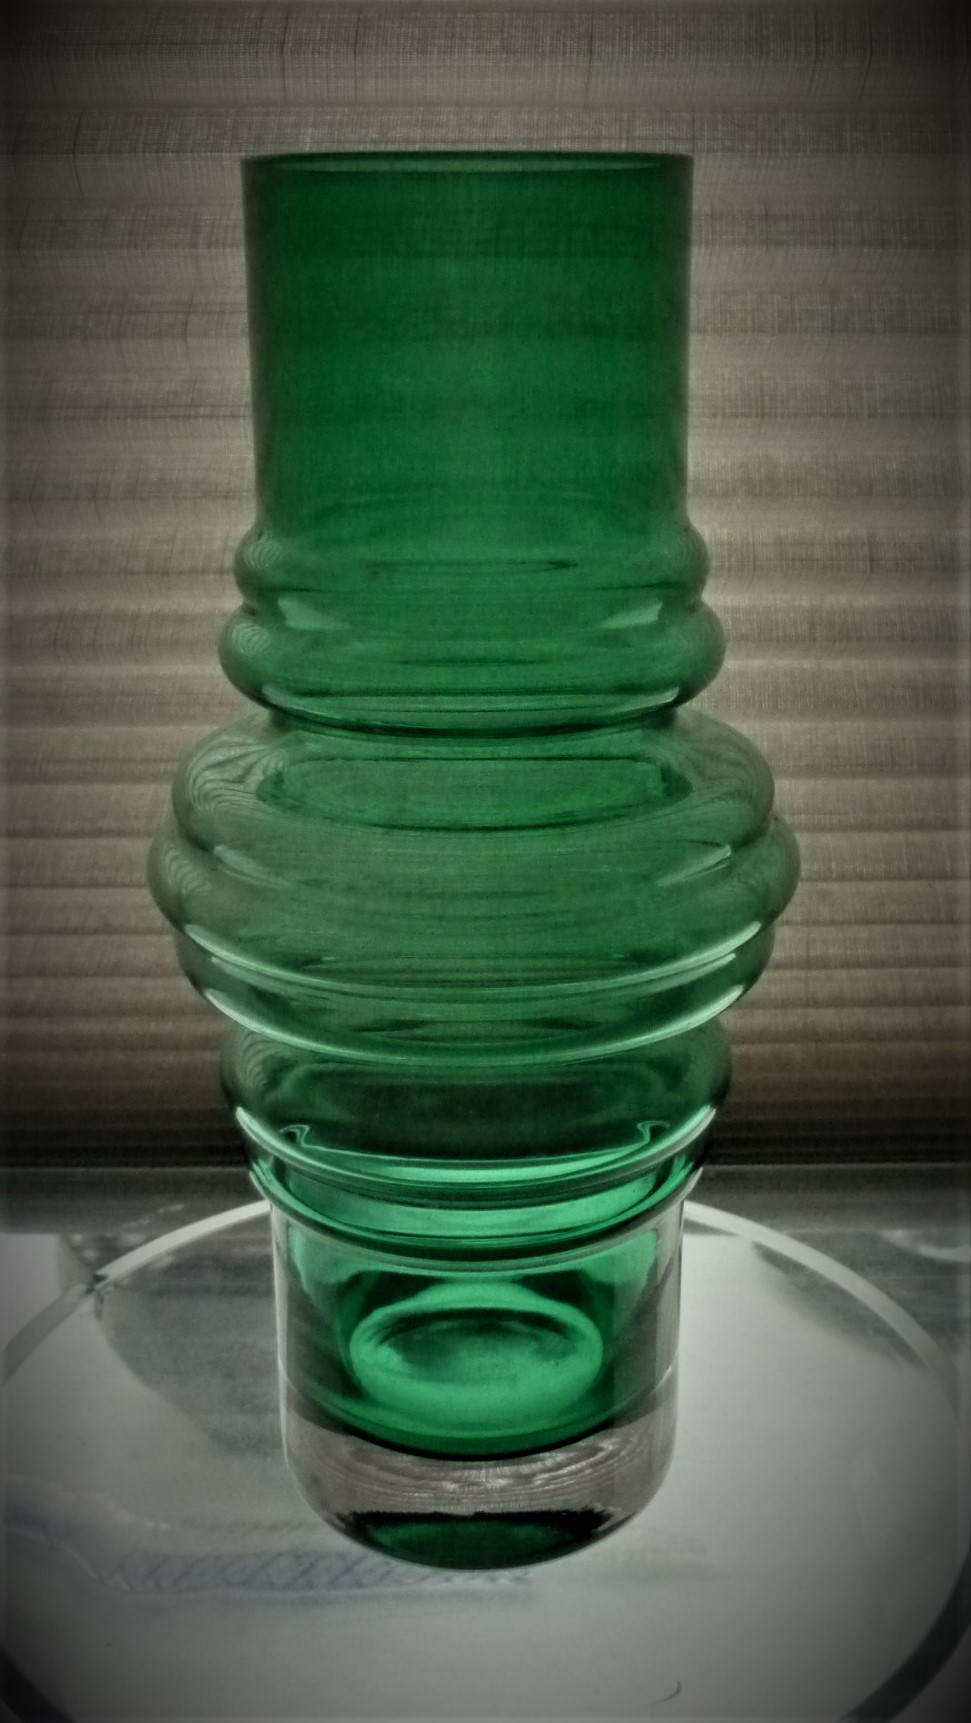 Green and clear cased glass 'Tulppaani' (Tulip) vase. Made by Riihimaki of Finland in the 1970's, and designed by Tamara Aladin. Pattern No.1516.